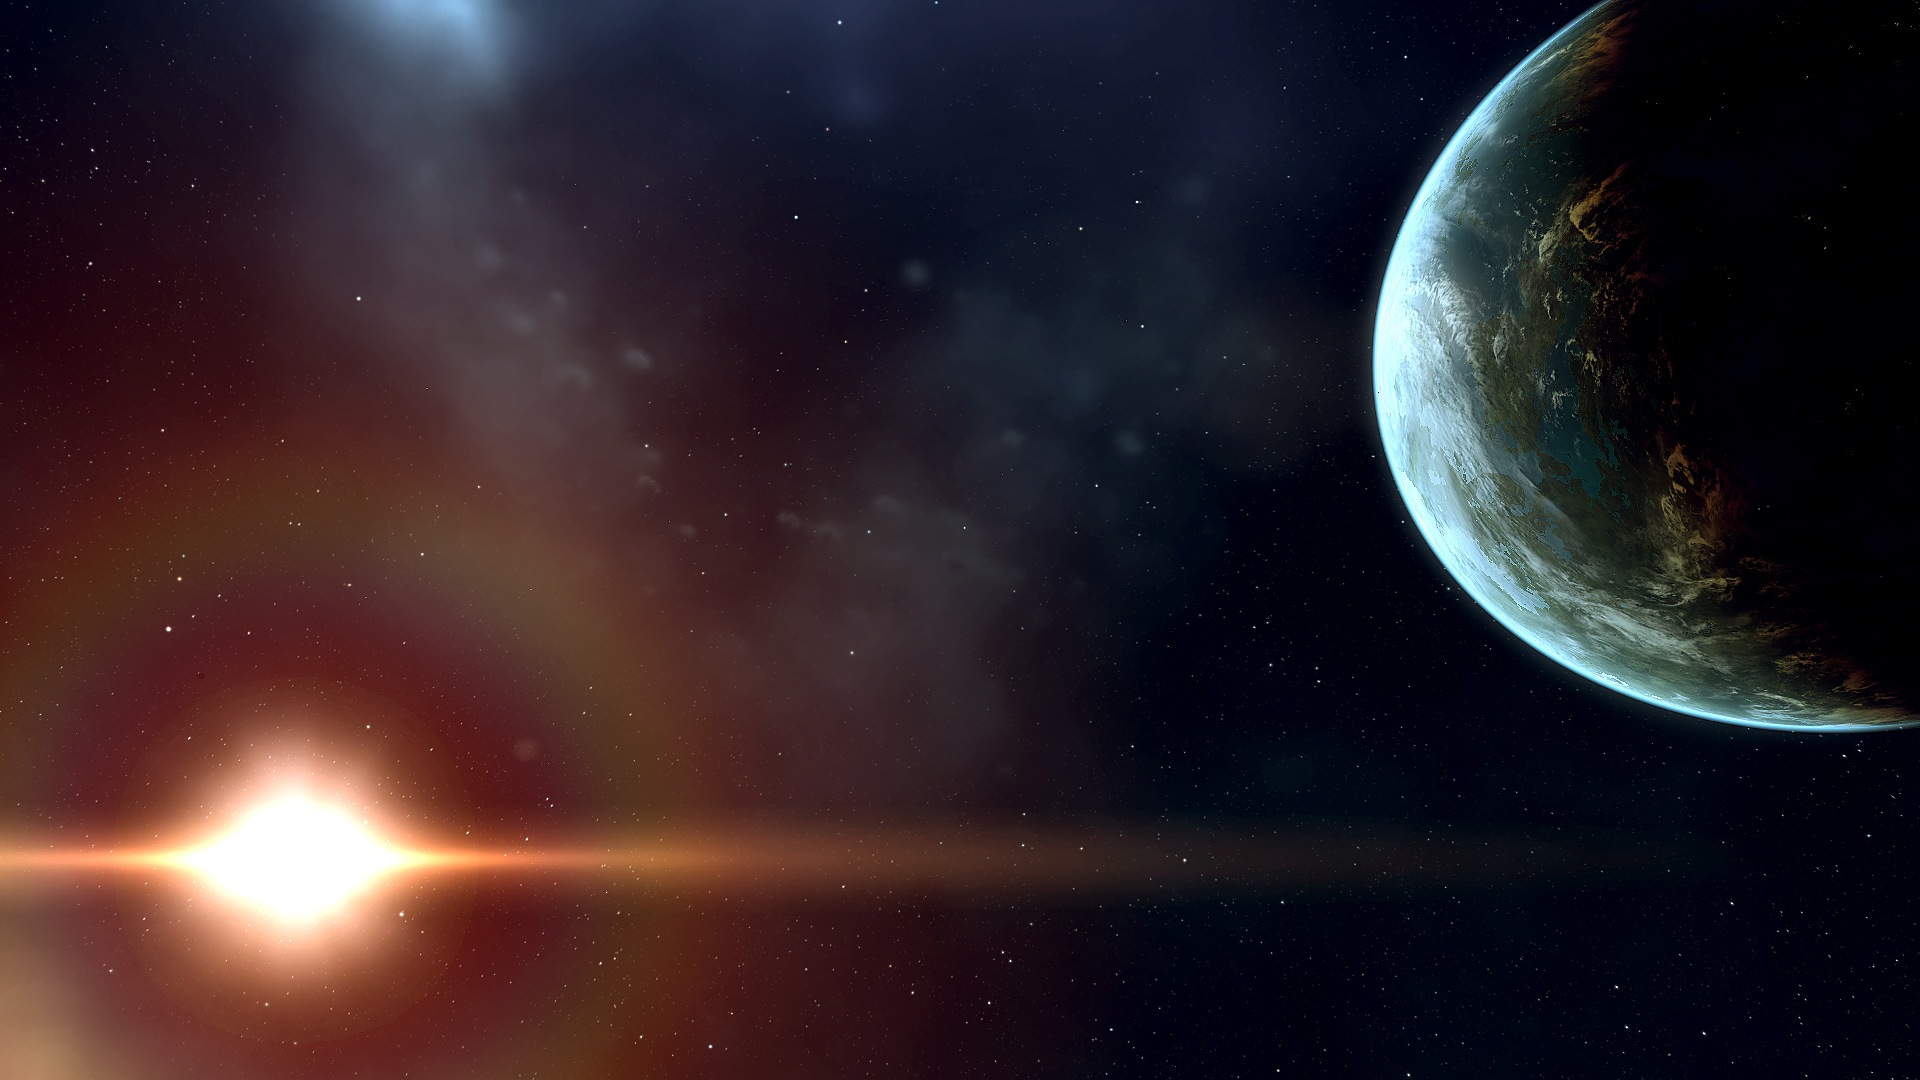 eve online planets - photo #16